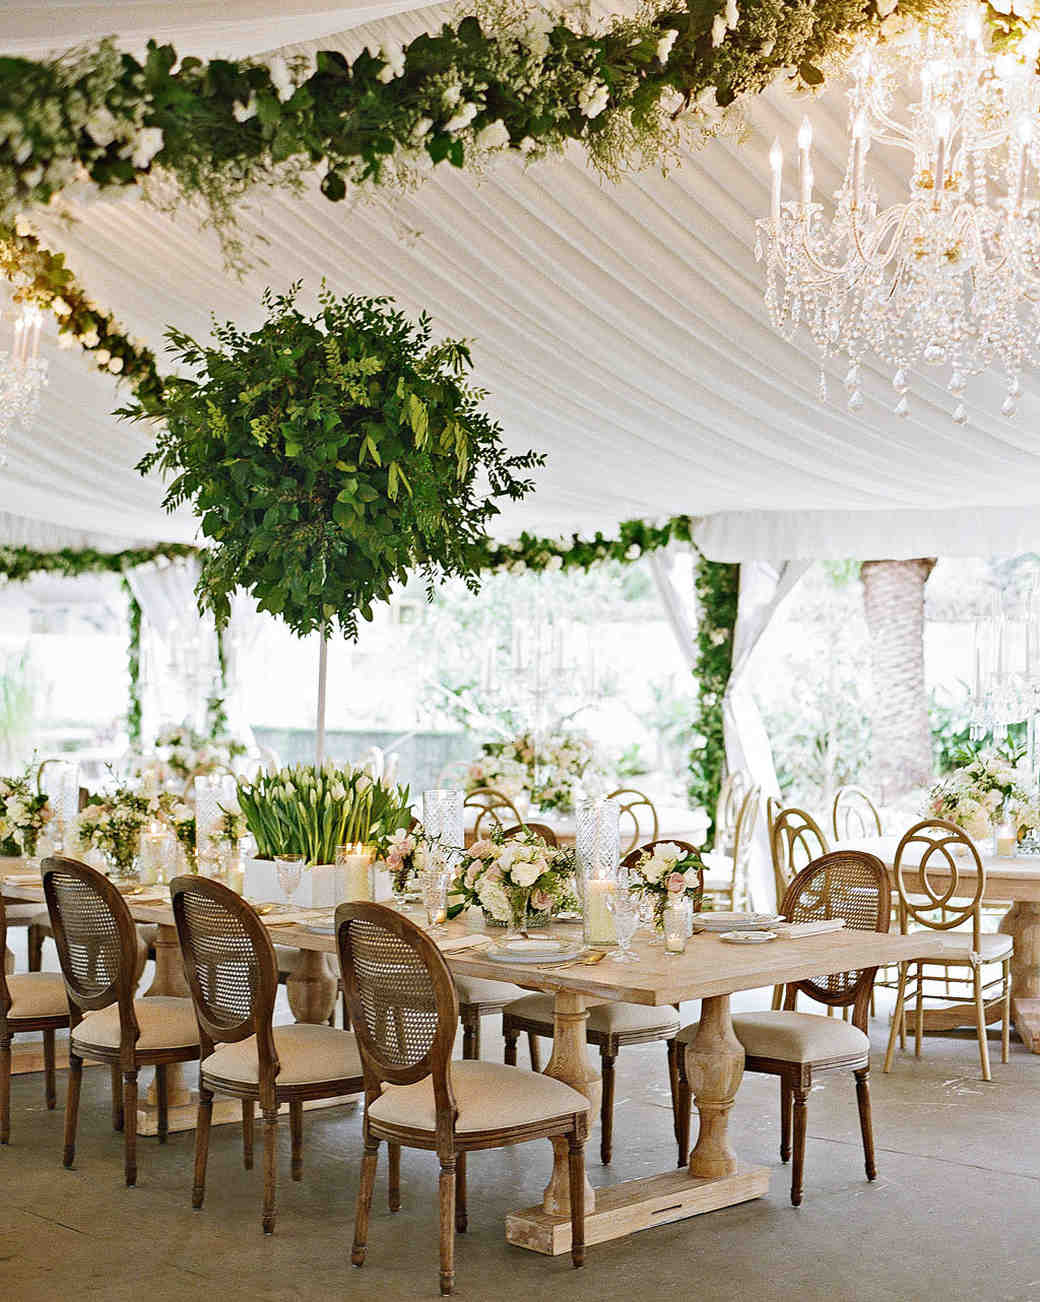 Tent Wedding Reception with Greenery Garlands and Chandeliers : homemade wedding tent - memphite.com